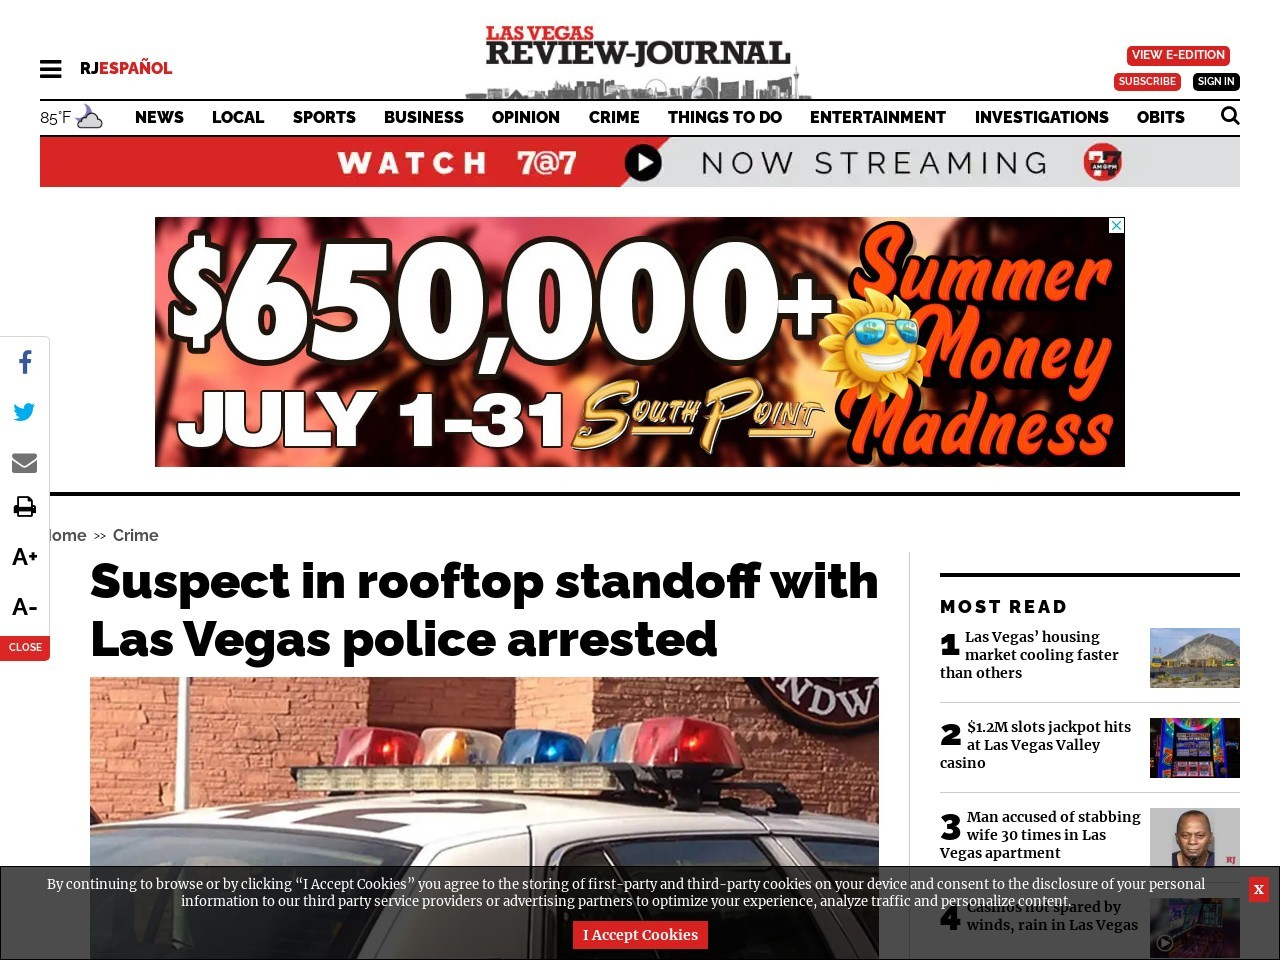 Suspect in rooftop standoff with Las Vegas police arrested